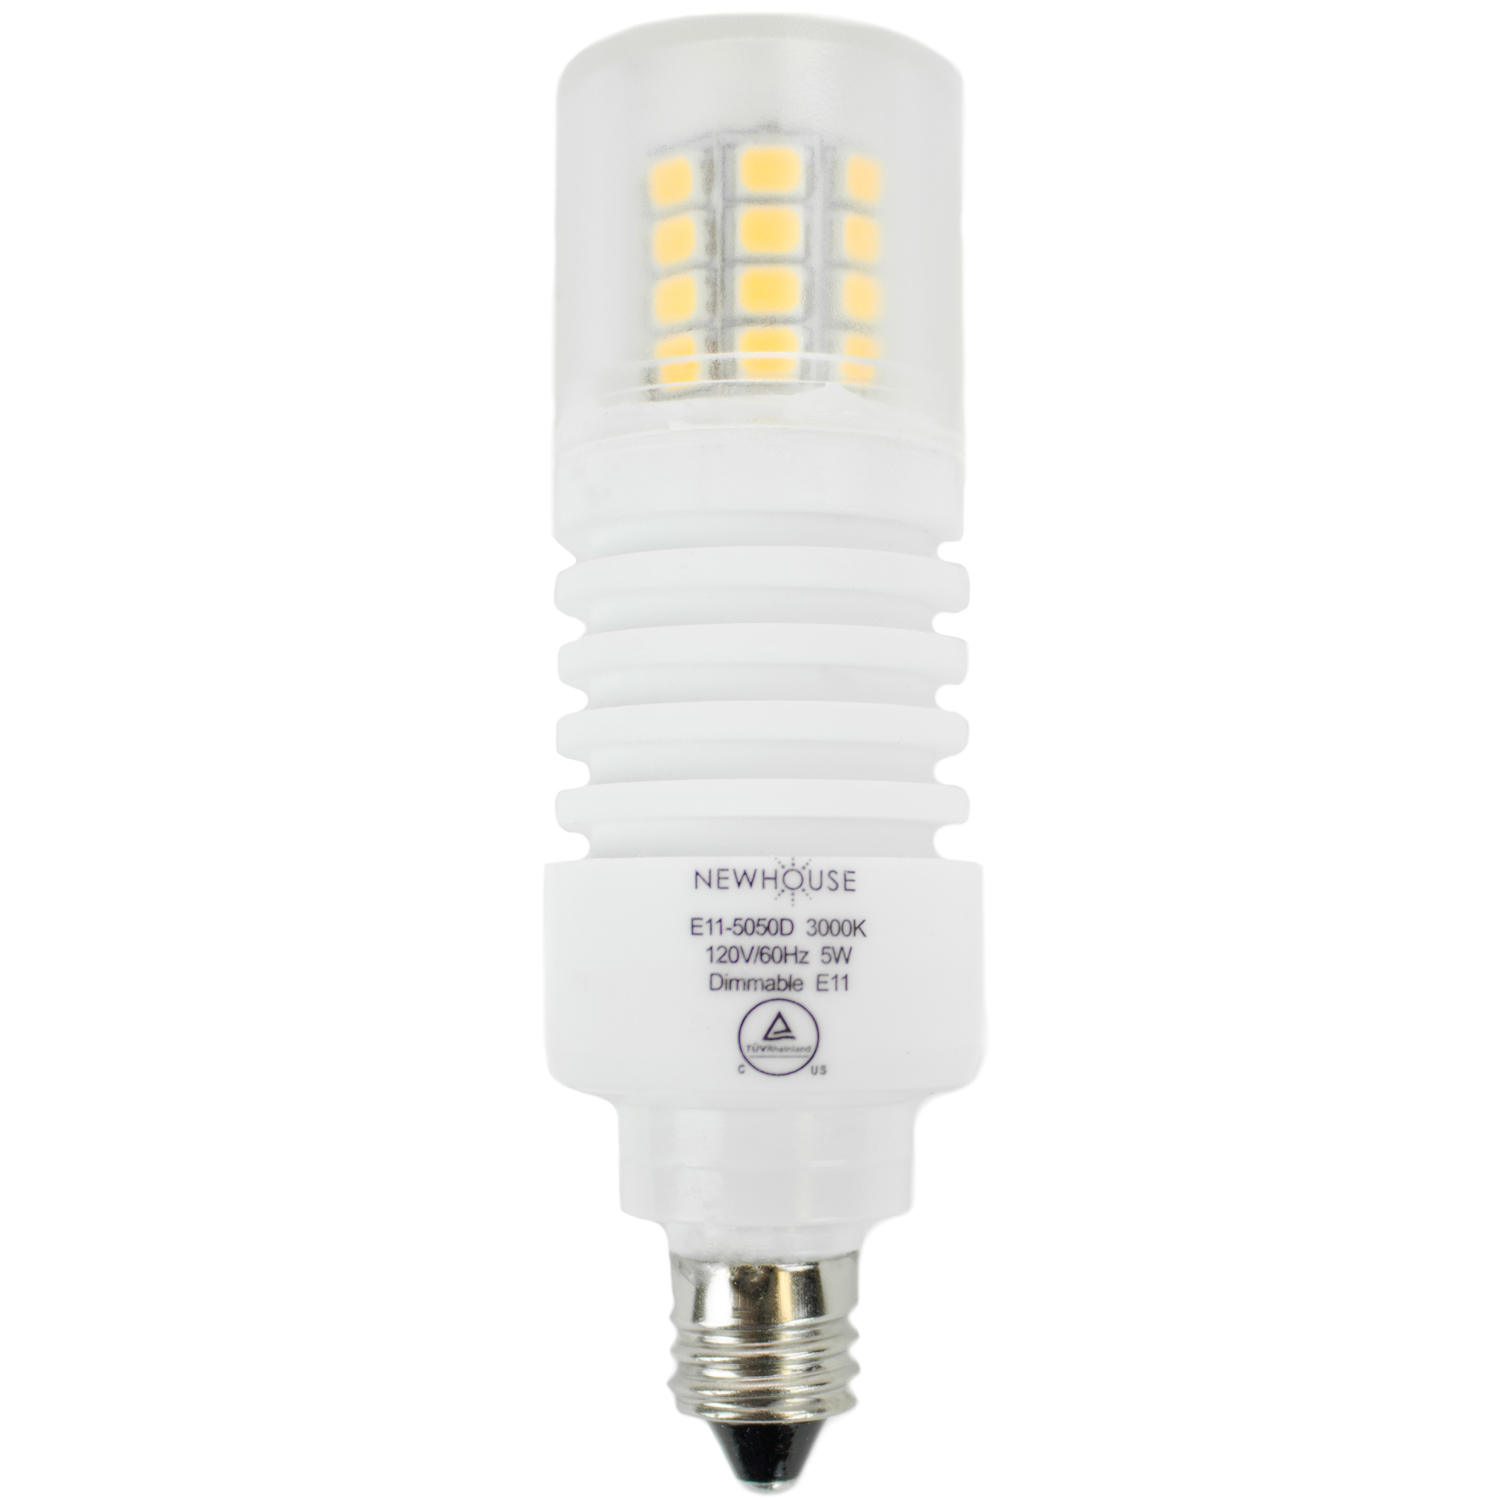 low bulb orkus pack optiglow india bulbs online prices in cool lumen led buy light day dp at of can amazon